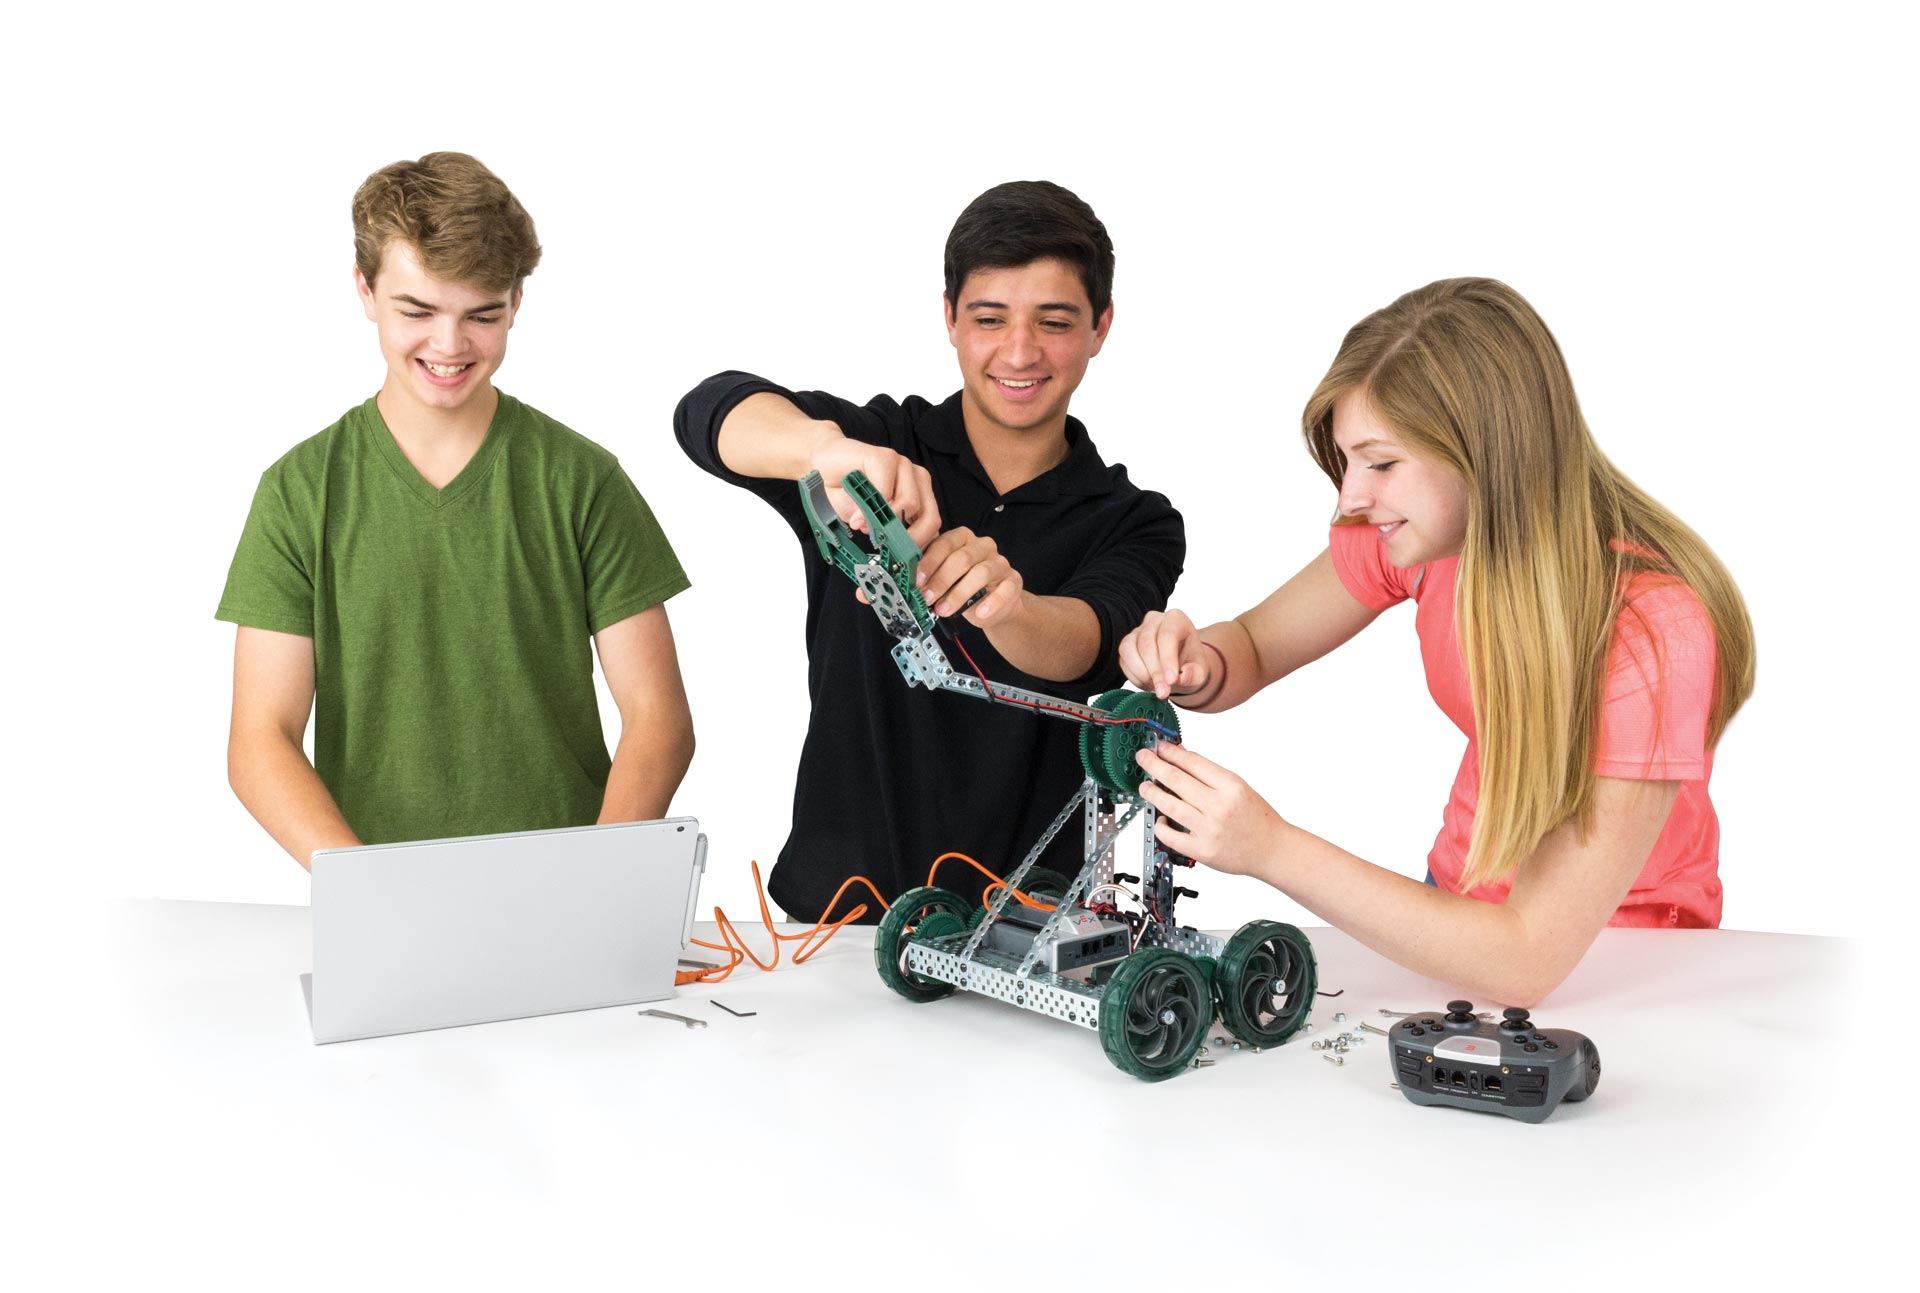 Students building educational robotics kit